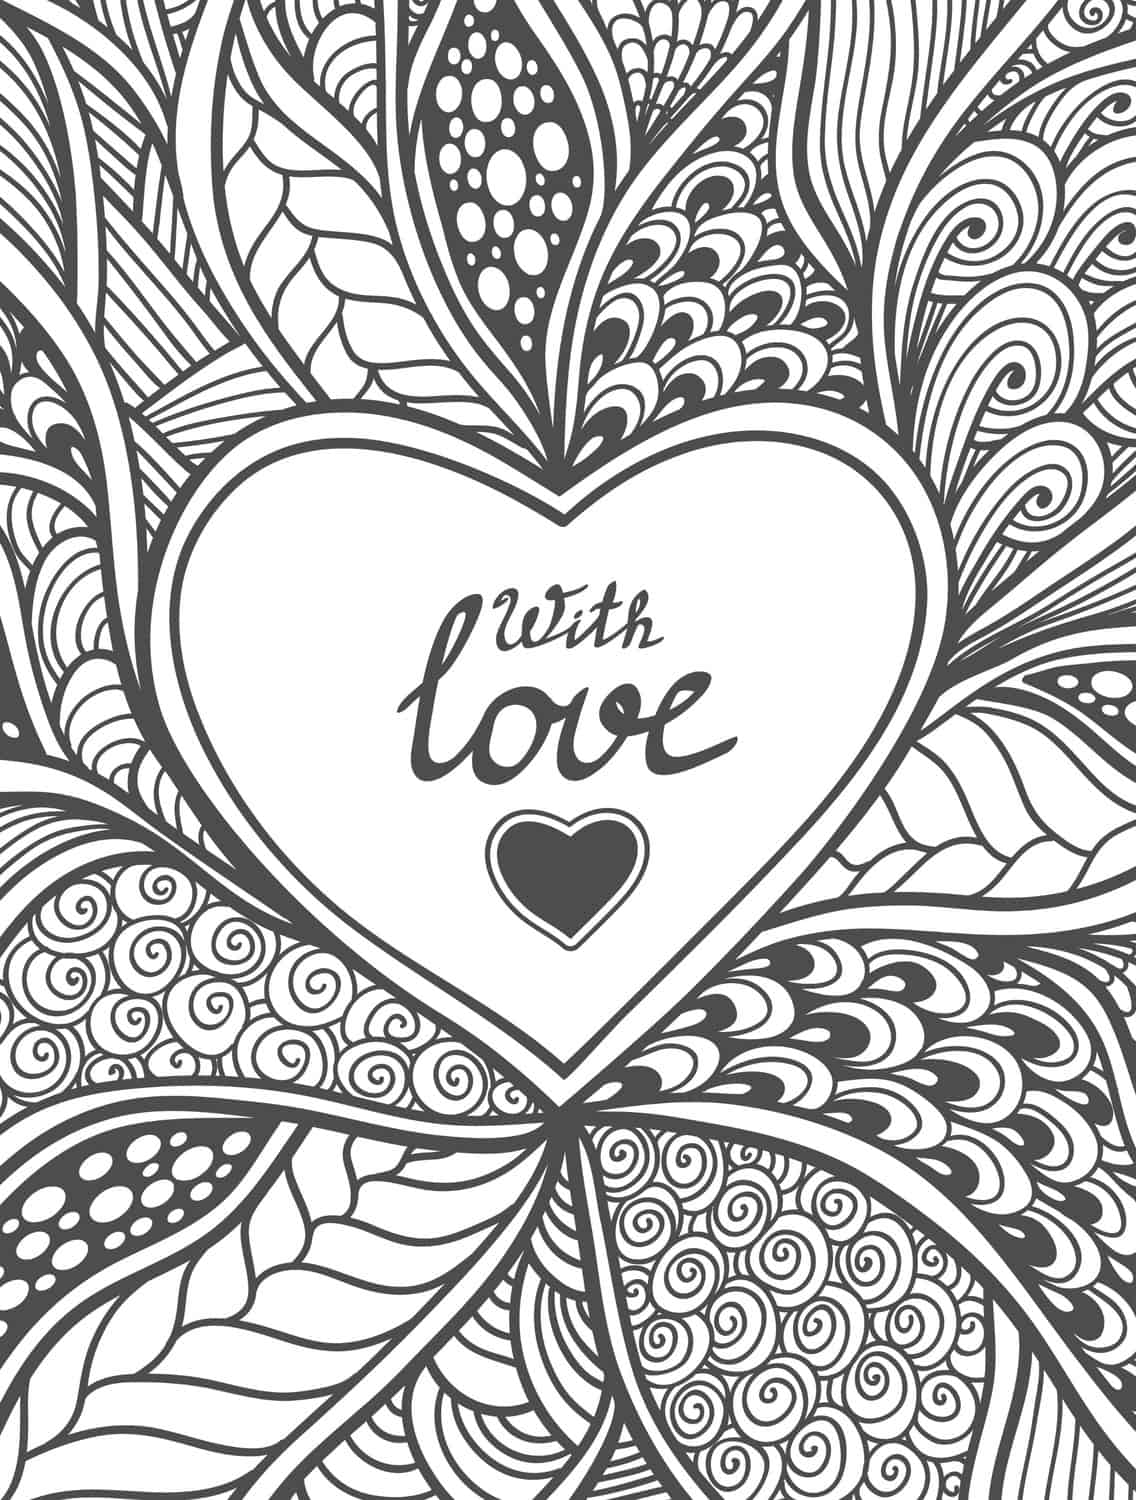 20 Free Printable Valentines Adult Coloring Pages Page 14 of 20